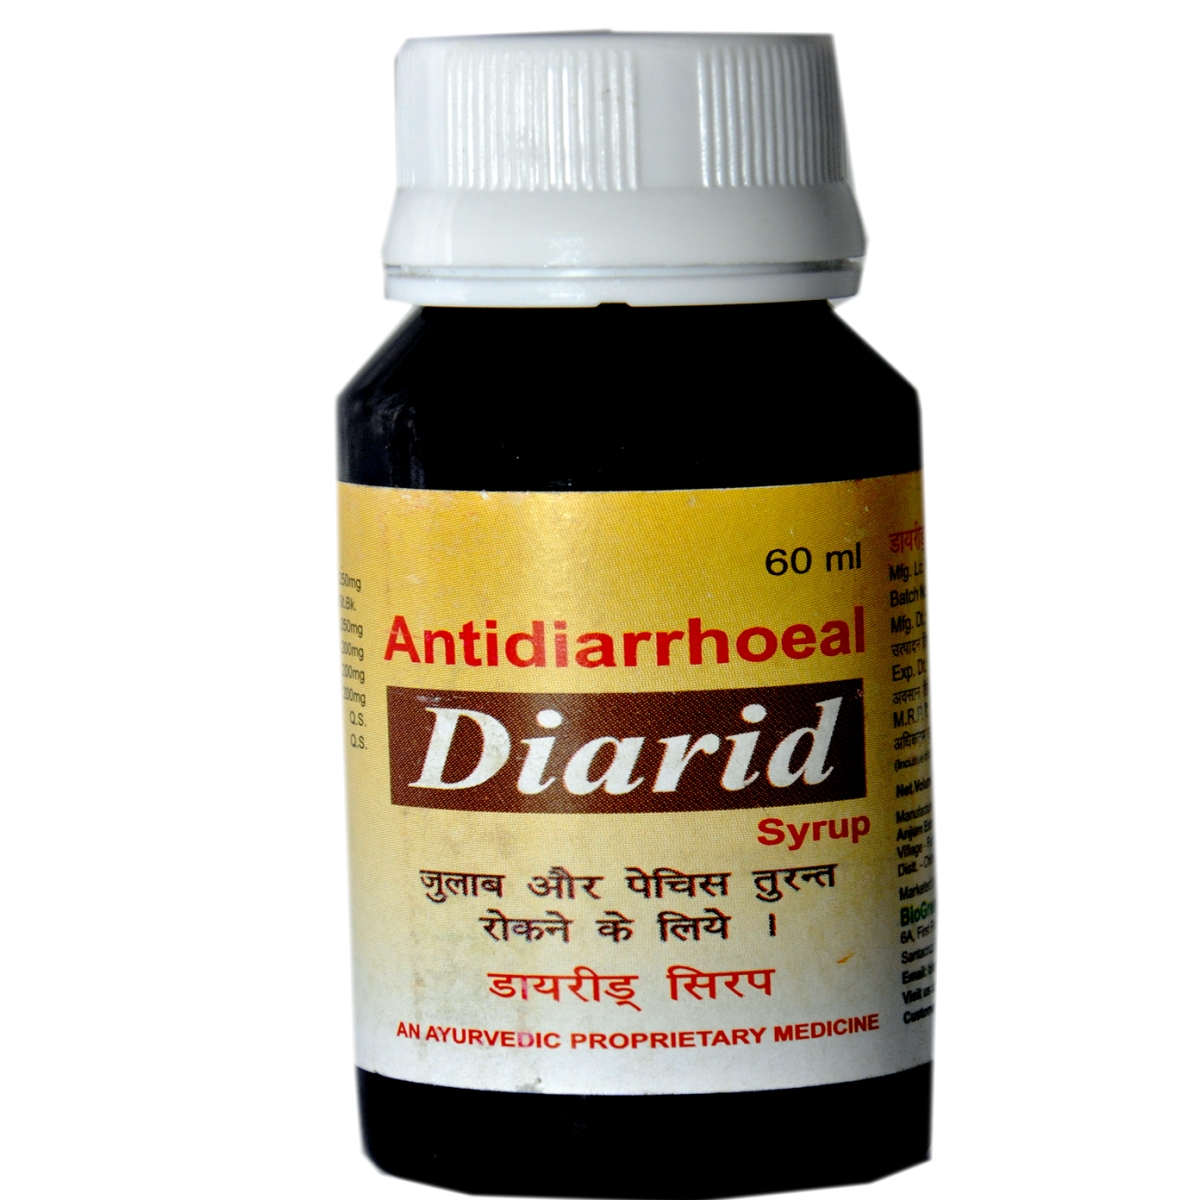 Diarid Syrup In Kanchipuram